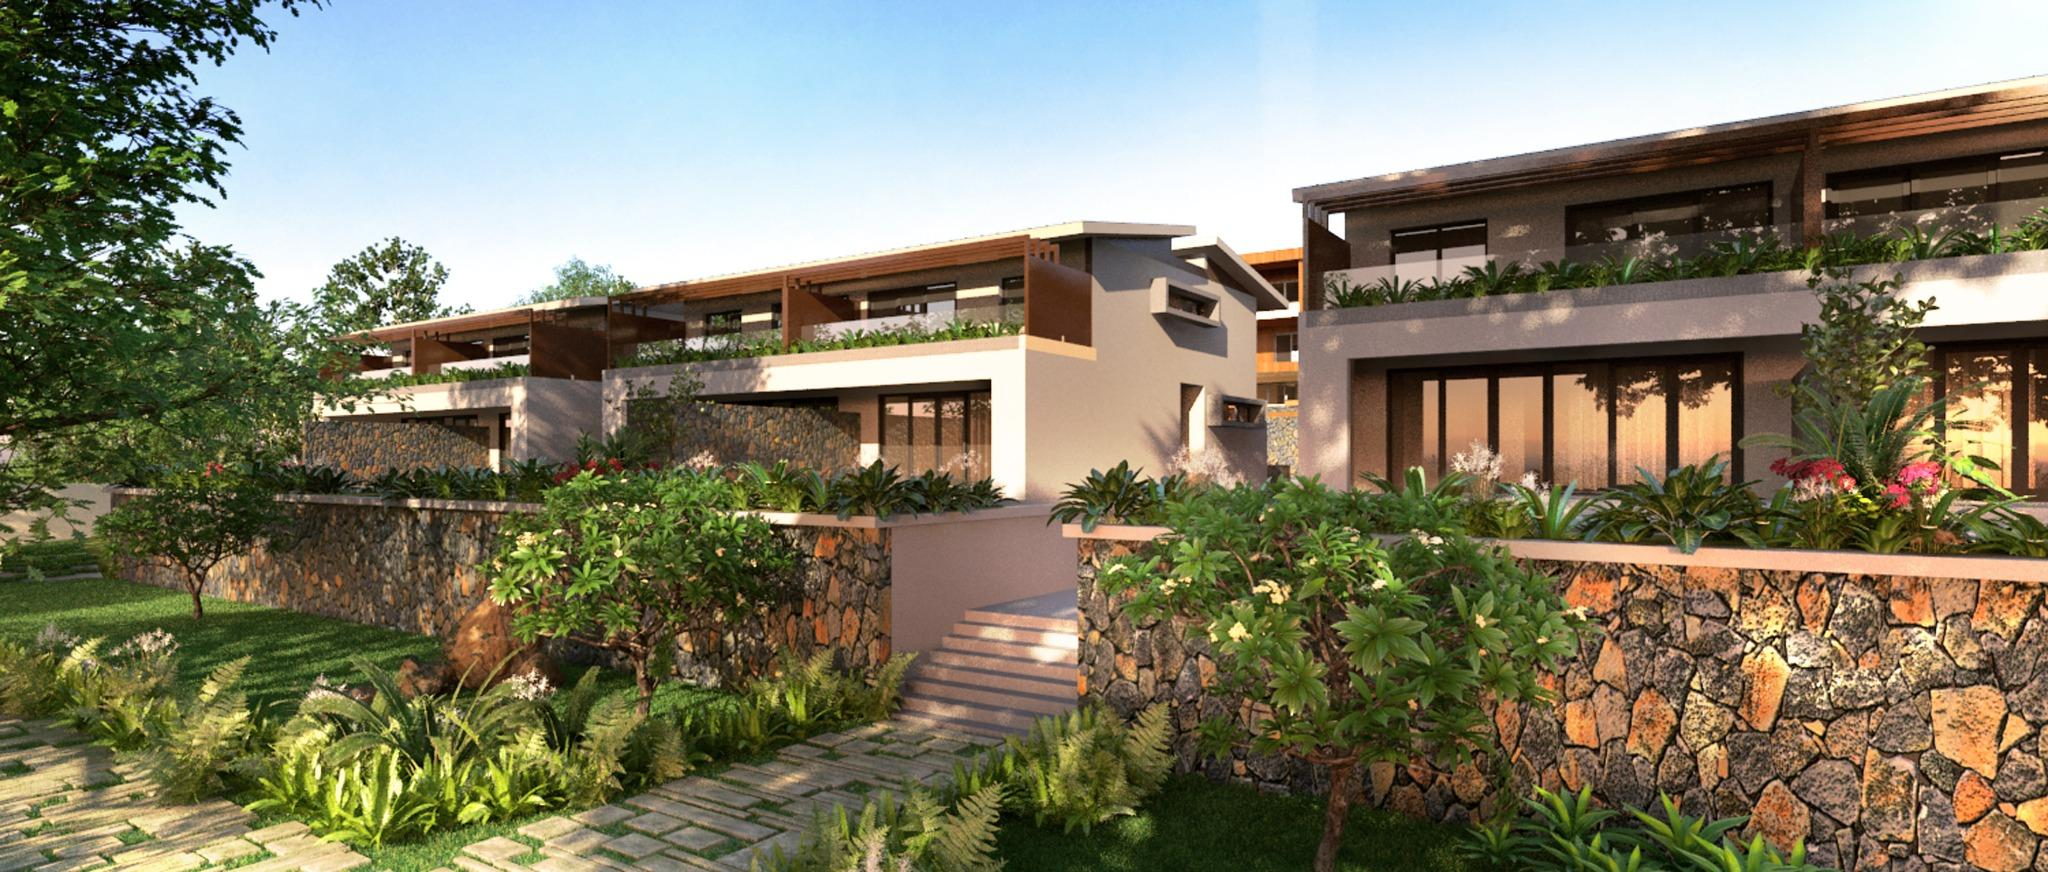 FOR SALE – Last unit Townhouse (ground floor + 1st floor) available on the project in Floreal